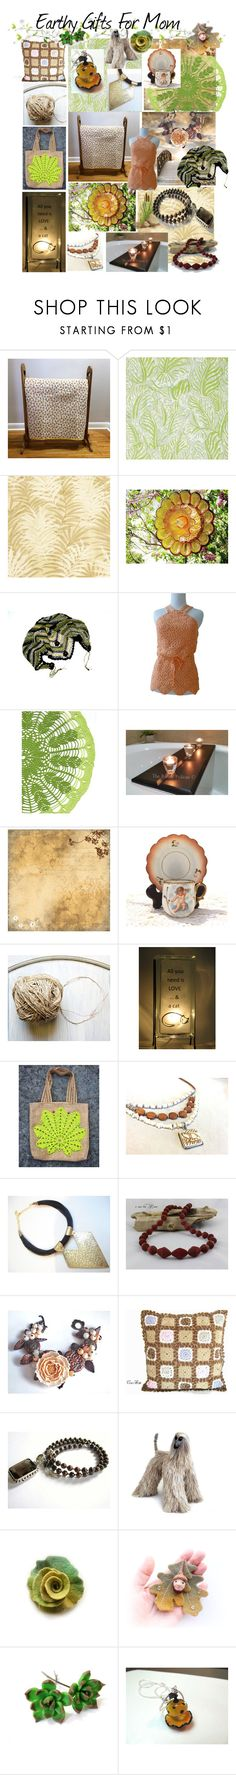 Earthy Gifts For Mom by belladonnasjoy on Polyvore featuring Christopher Farr and etsy